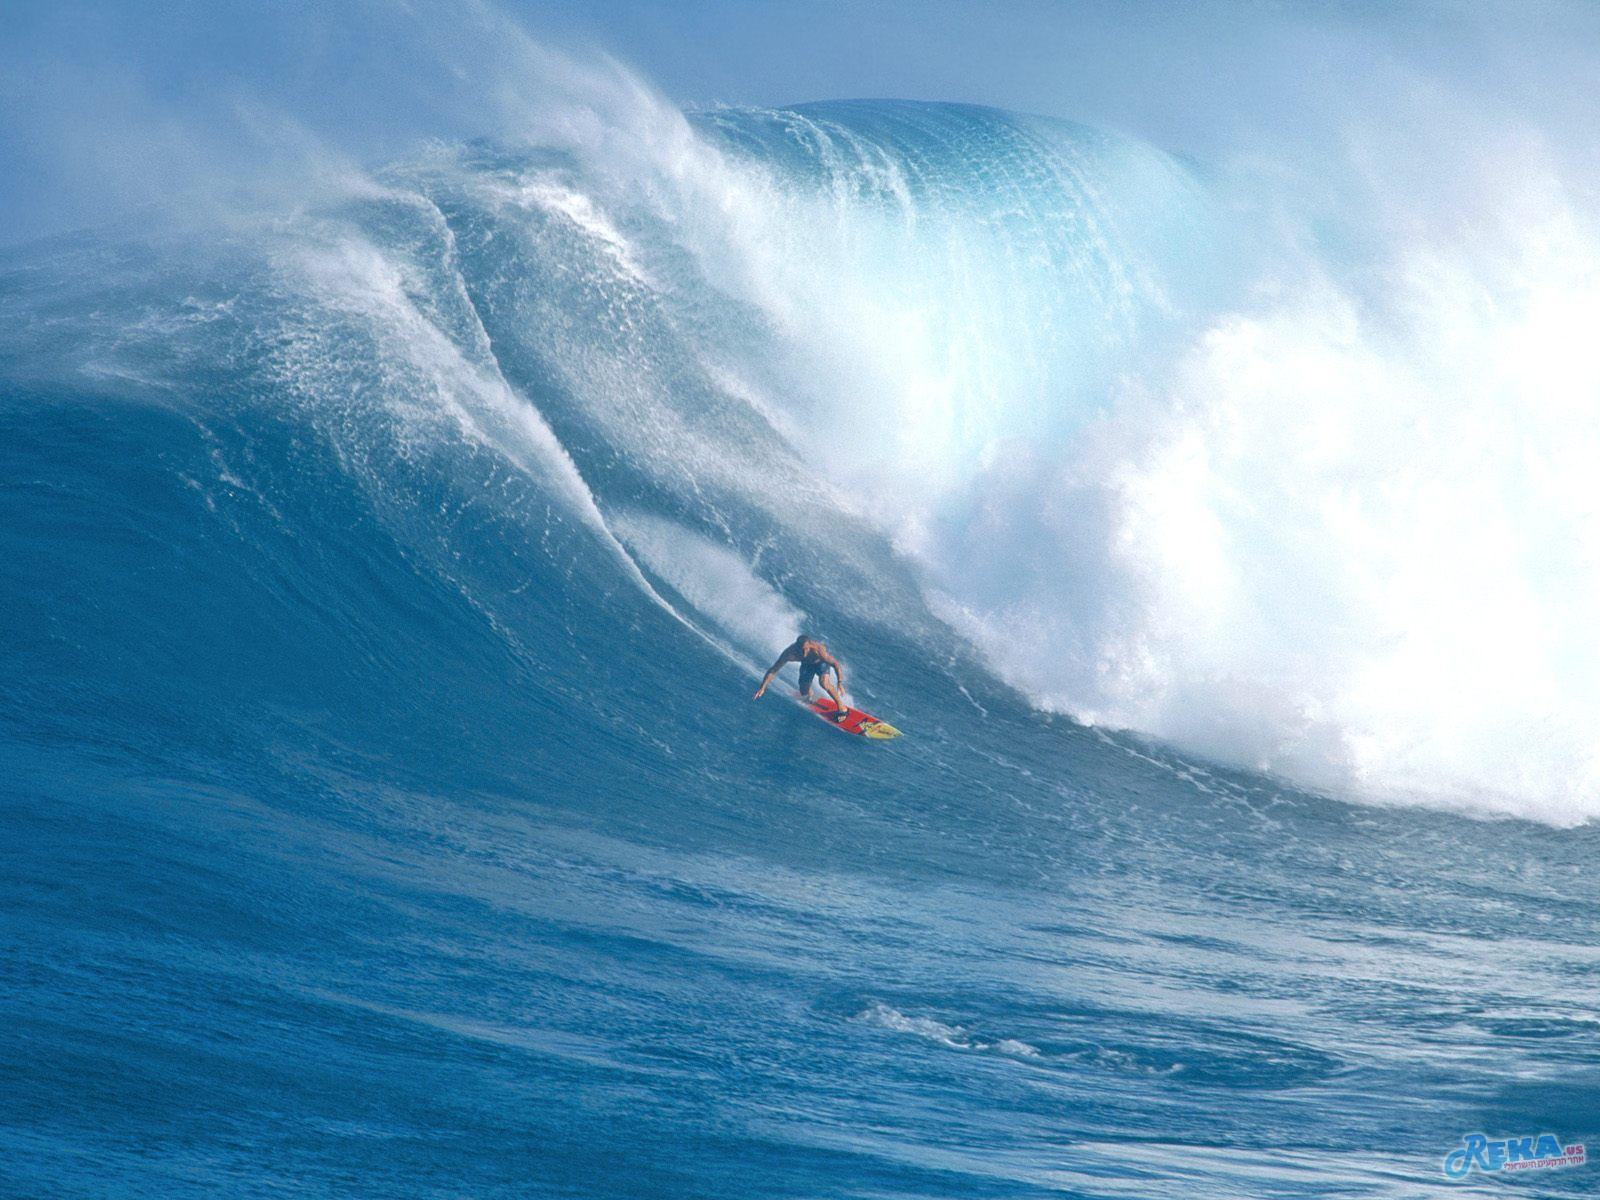 Surfing Jaws, Maui, Hawaii.jpg